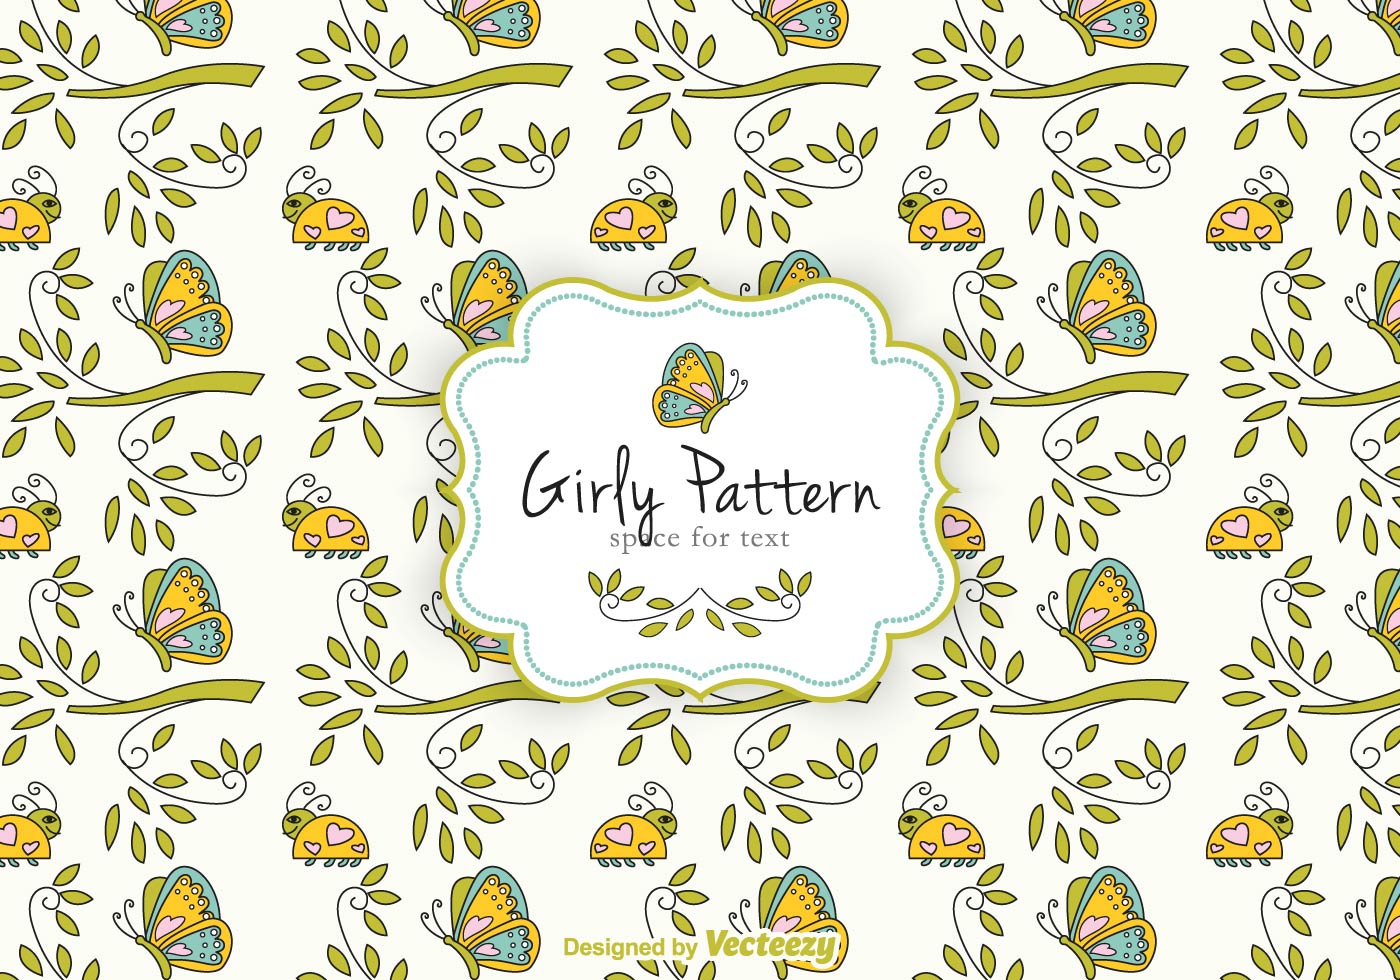 Girly Pattern Free Vector Art - (10800 Free Downloads)